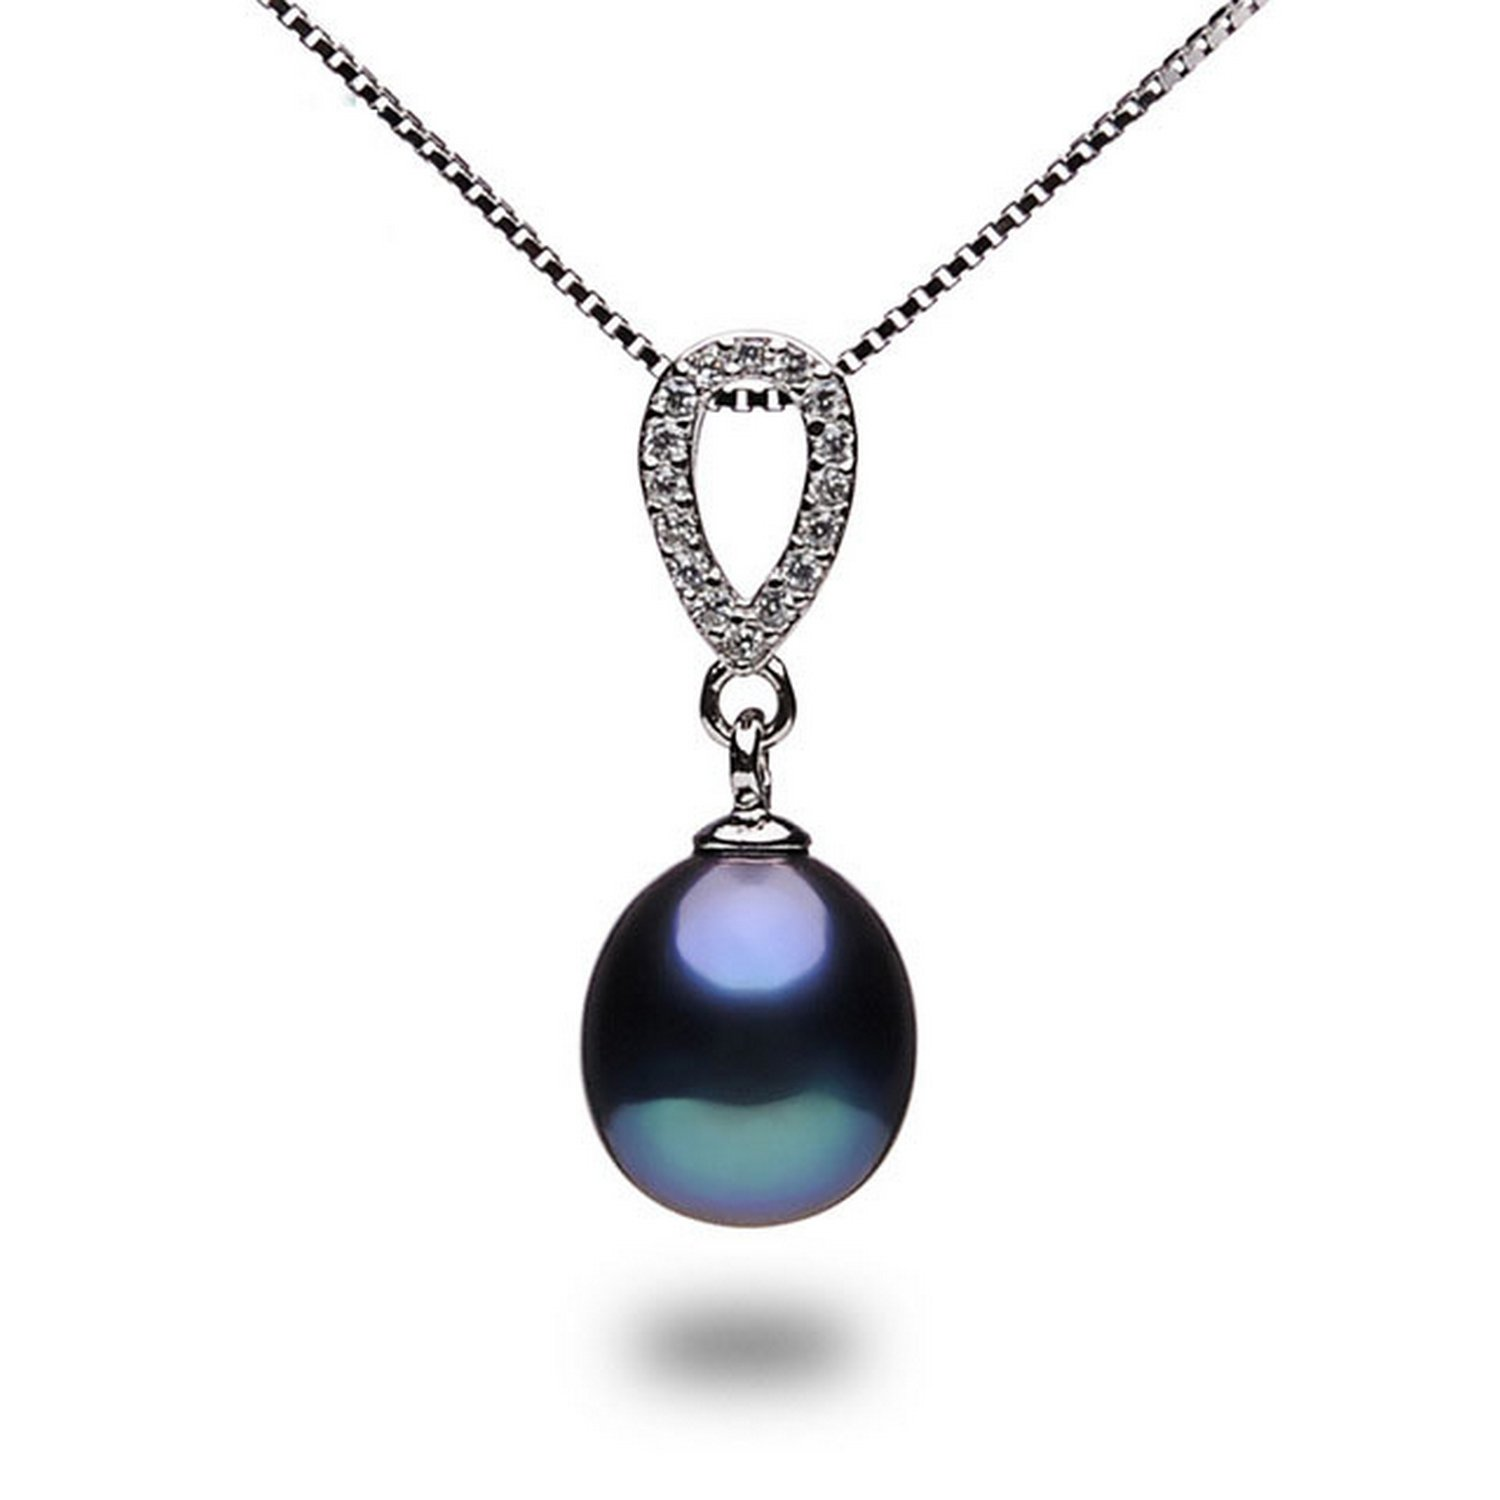 CS-DB Jewelry Silver Black Pearl Fashion Chain Charm Pendants Necklaces